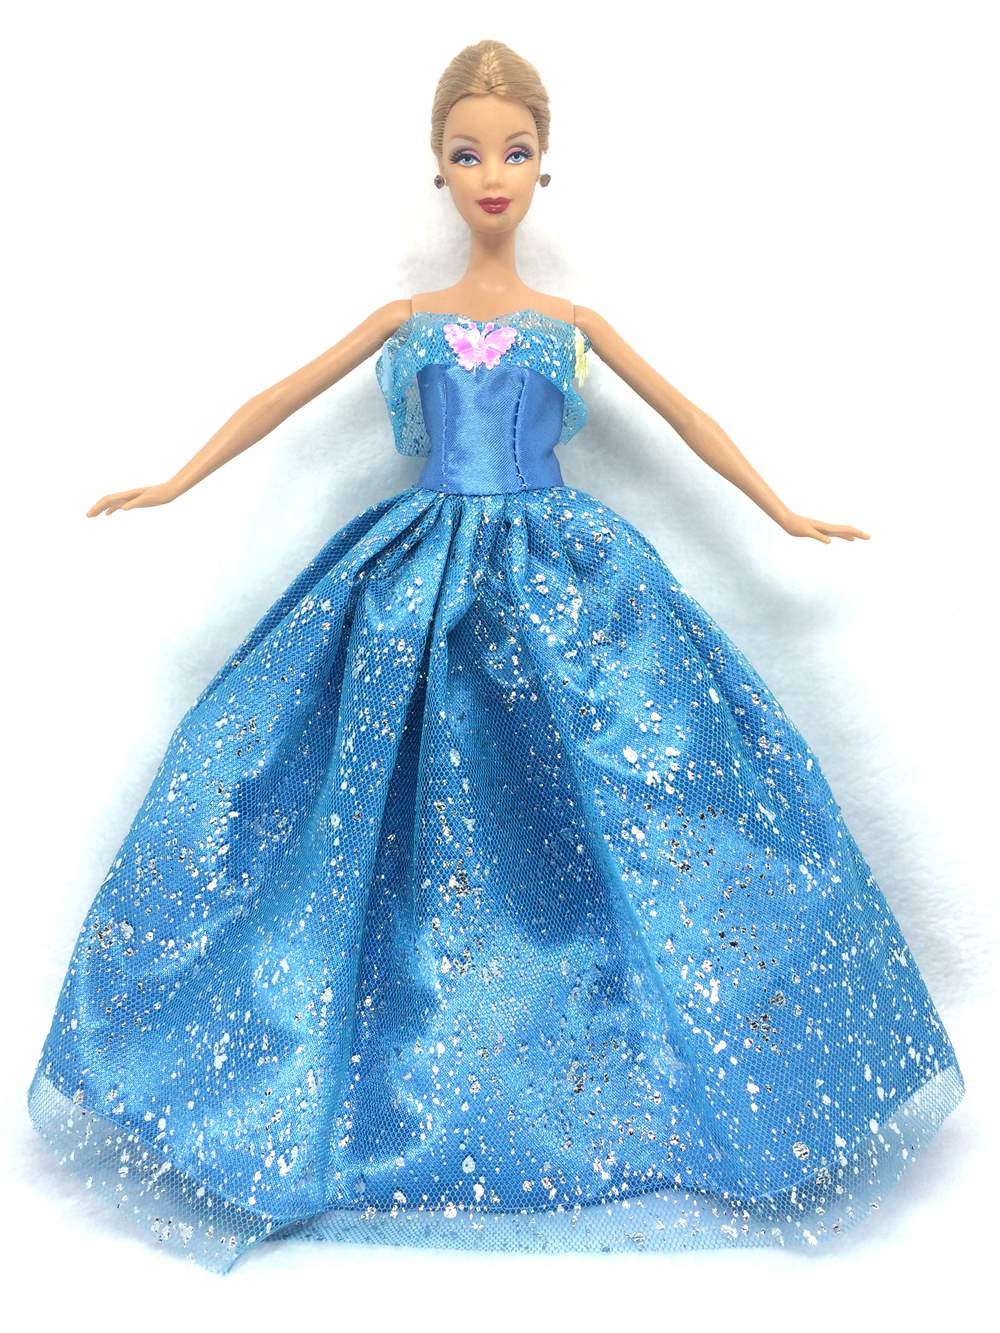 NK One Set Princess Doll Dress Similar Fairy Tale Cinderella Wedding Dress Gown Party Outfit For Barbie Doll Best Girls' Gift 6I d0372 best girl gift 50cm kurhn princess doll with large wedding dress gift luxury dress set handemade romantic bride 06